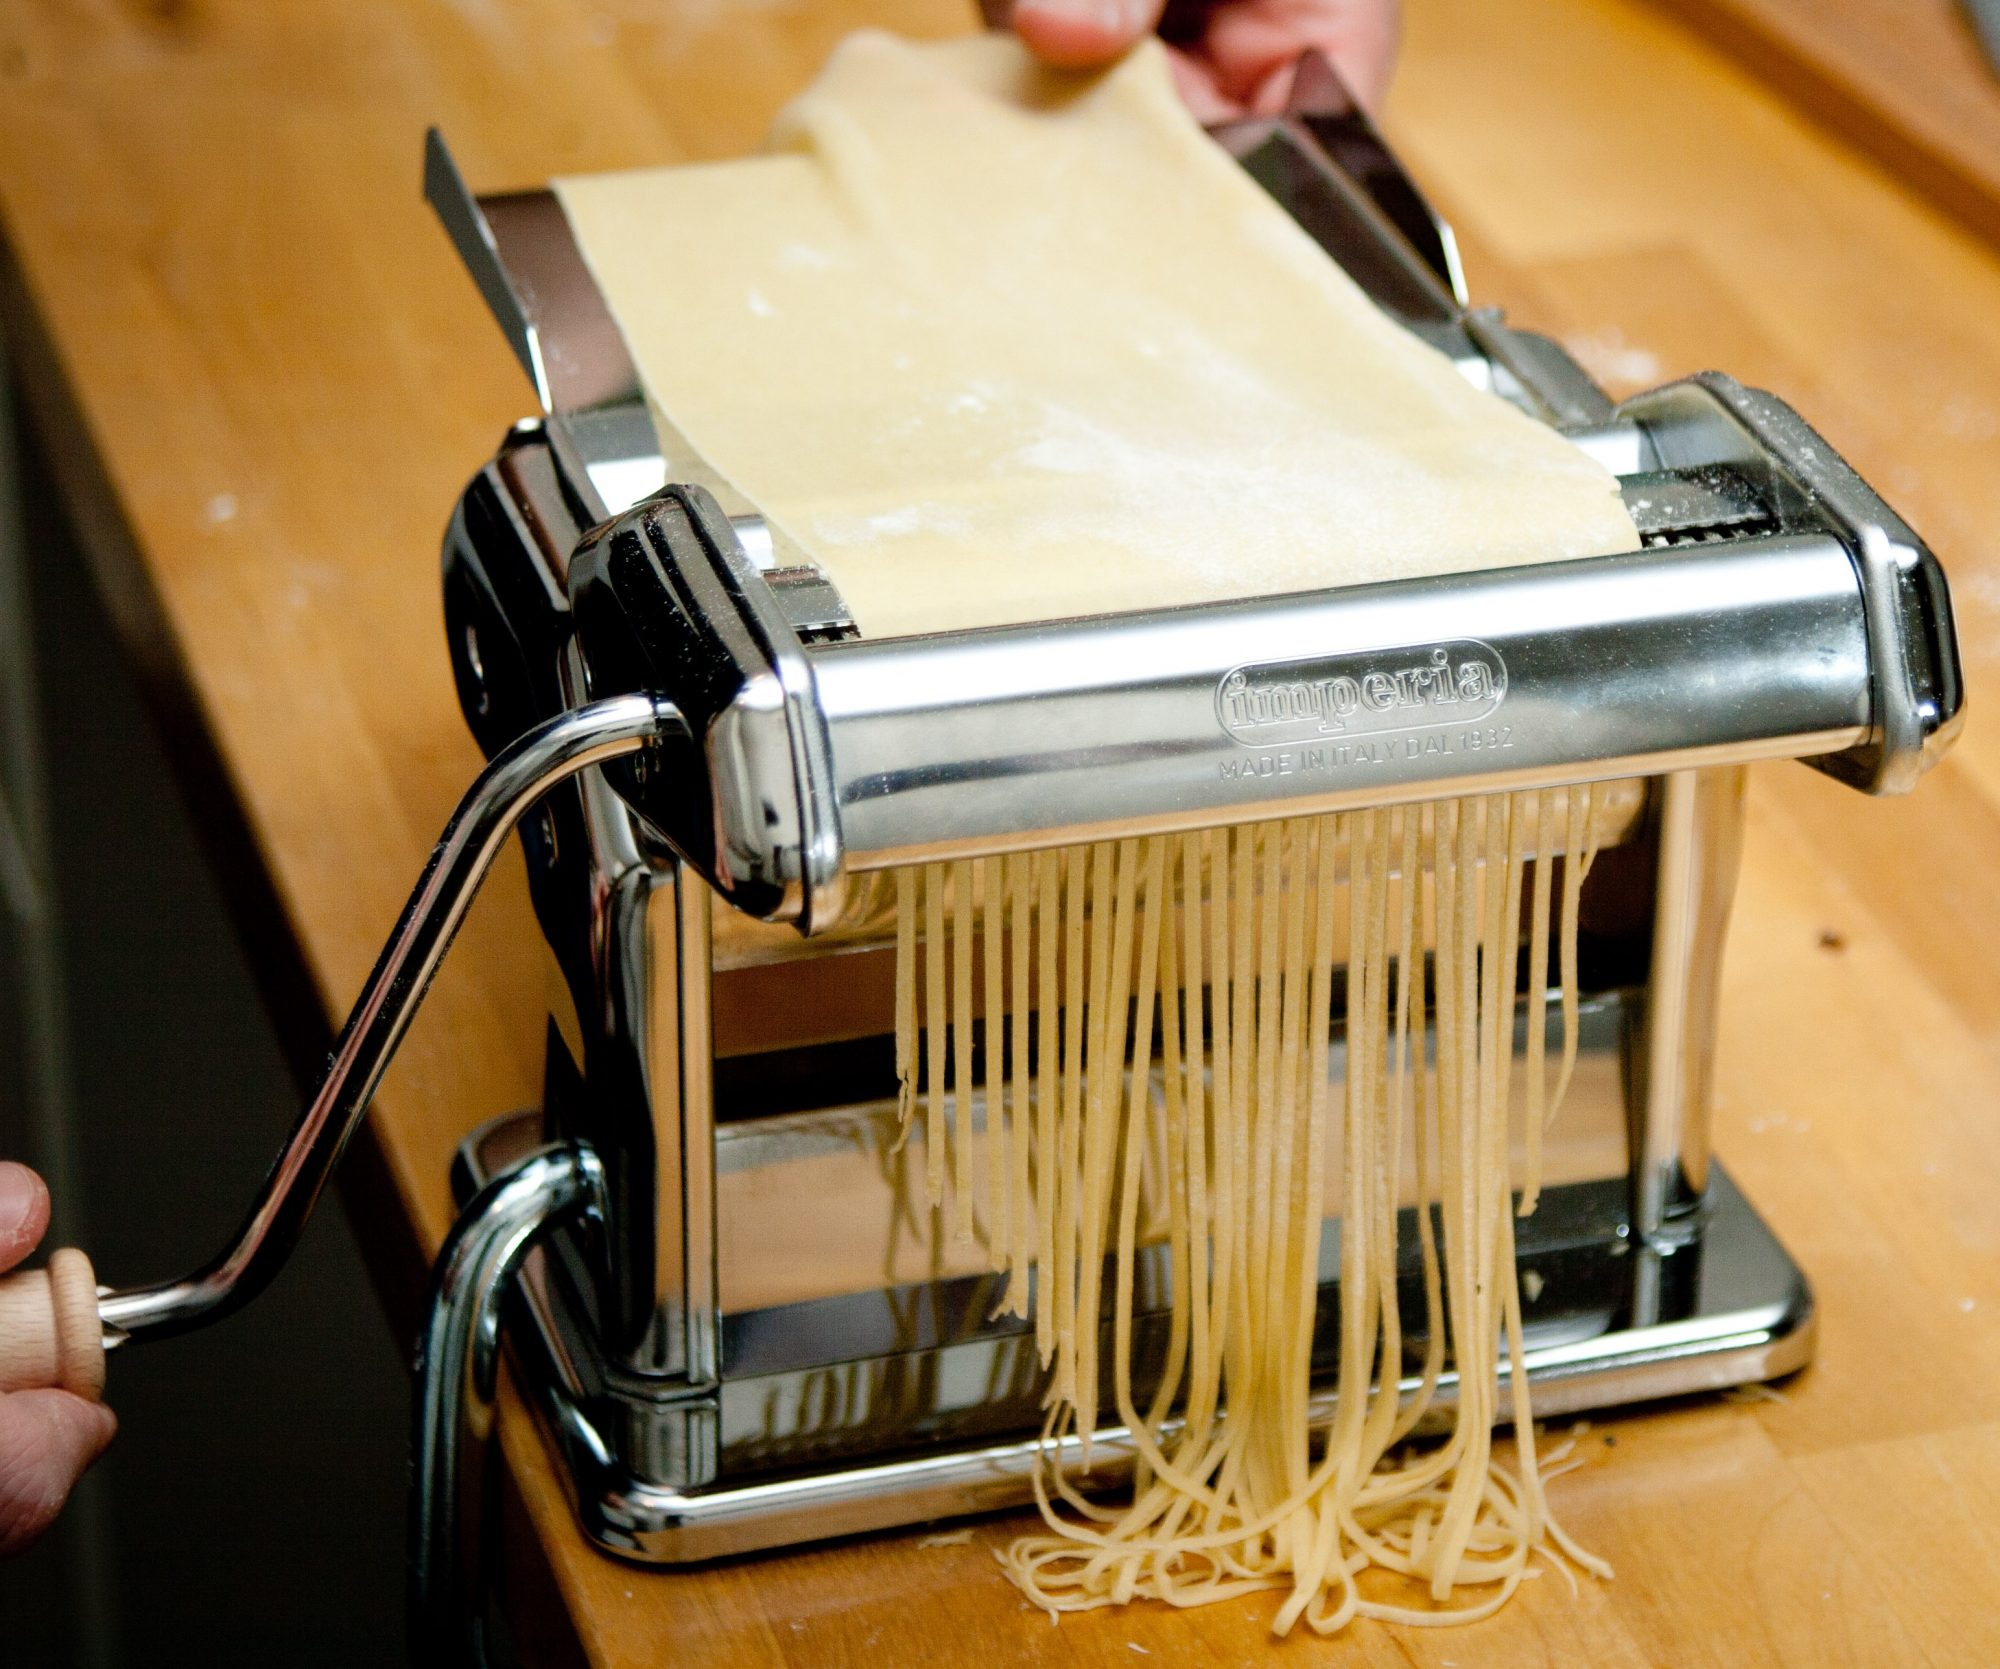 800778_Basic-Pasta_11899_Photo-by-Ocell.jpg